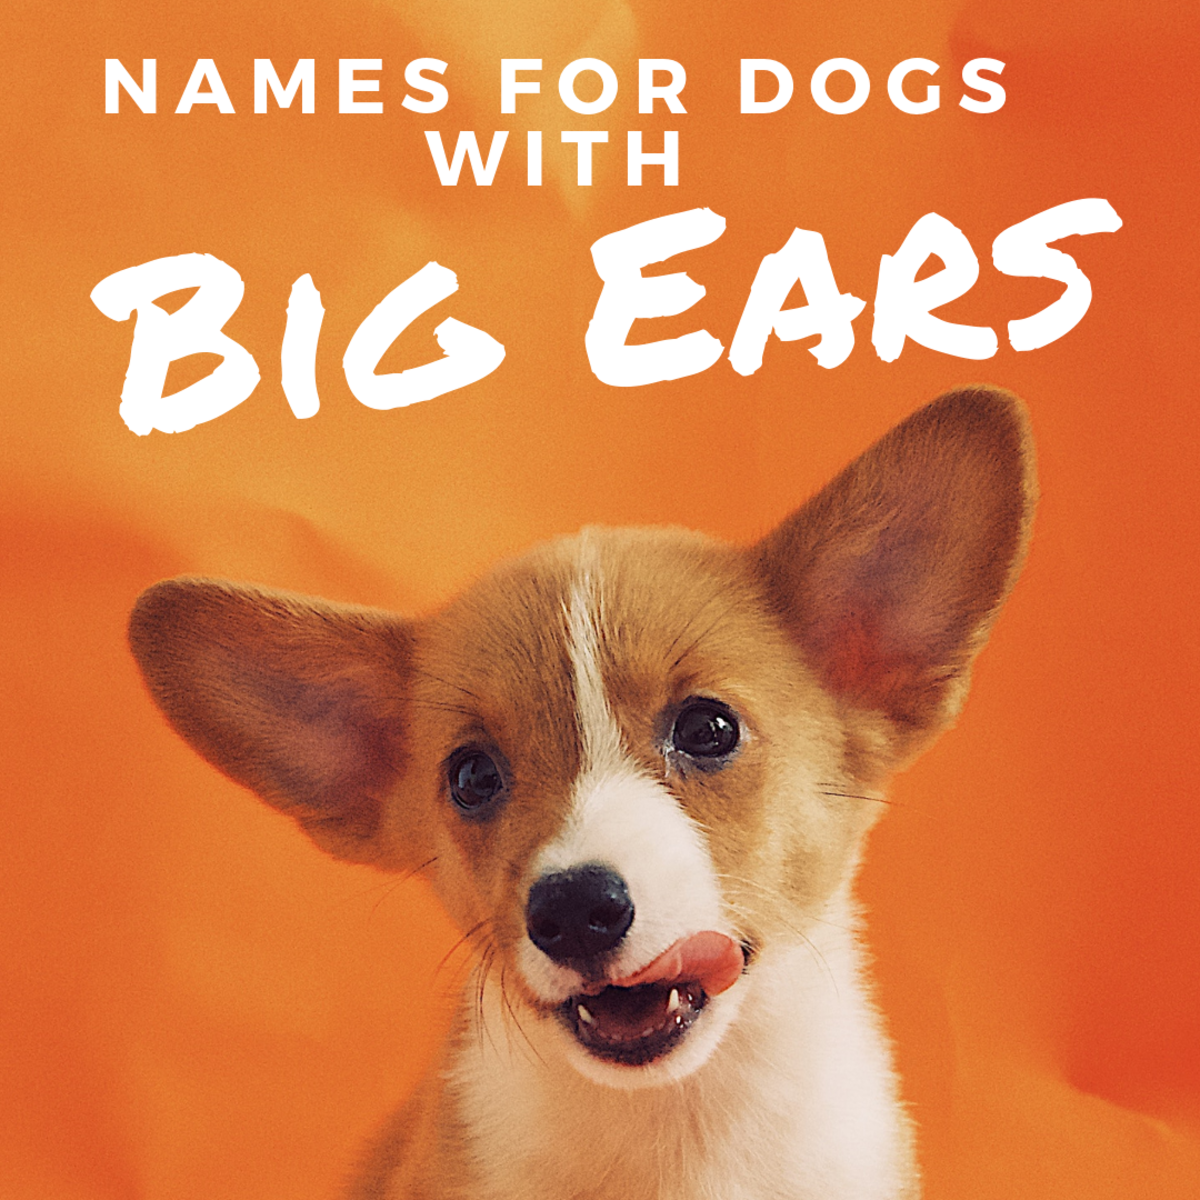 Names for Dogs With Big Ears